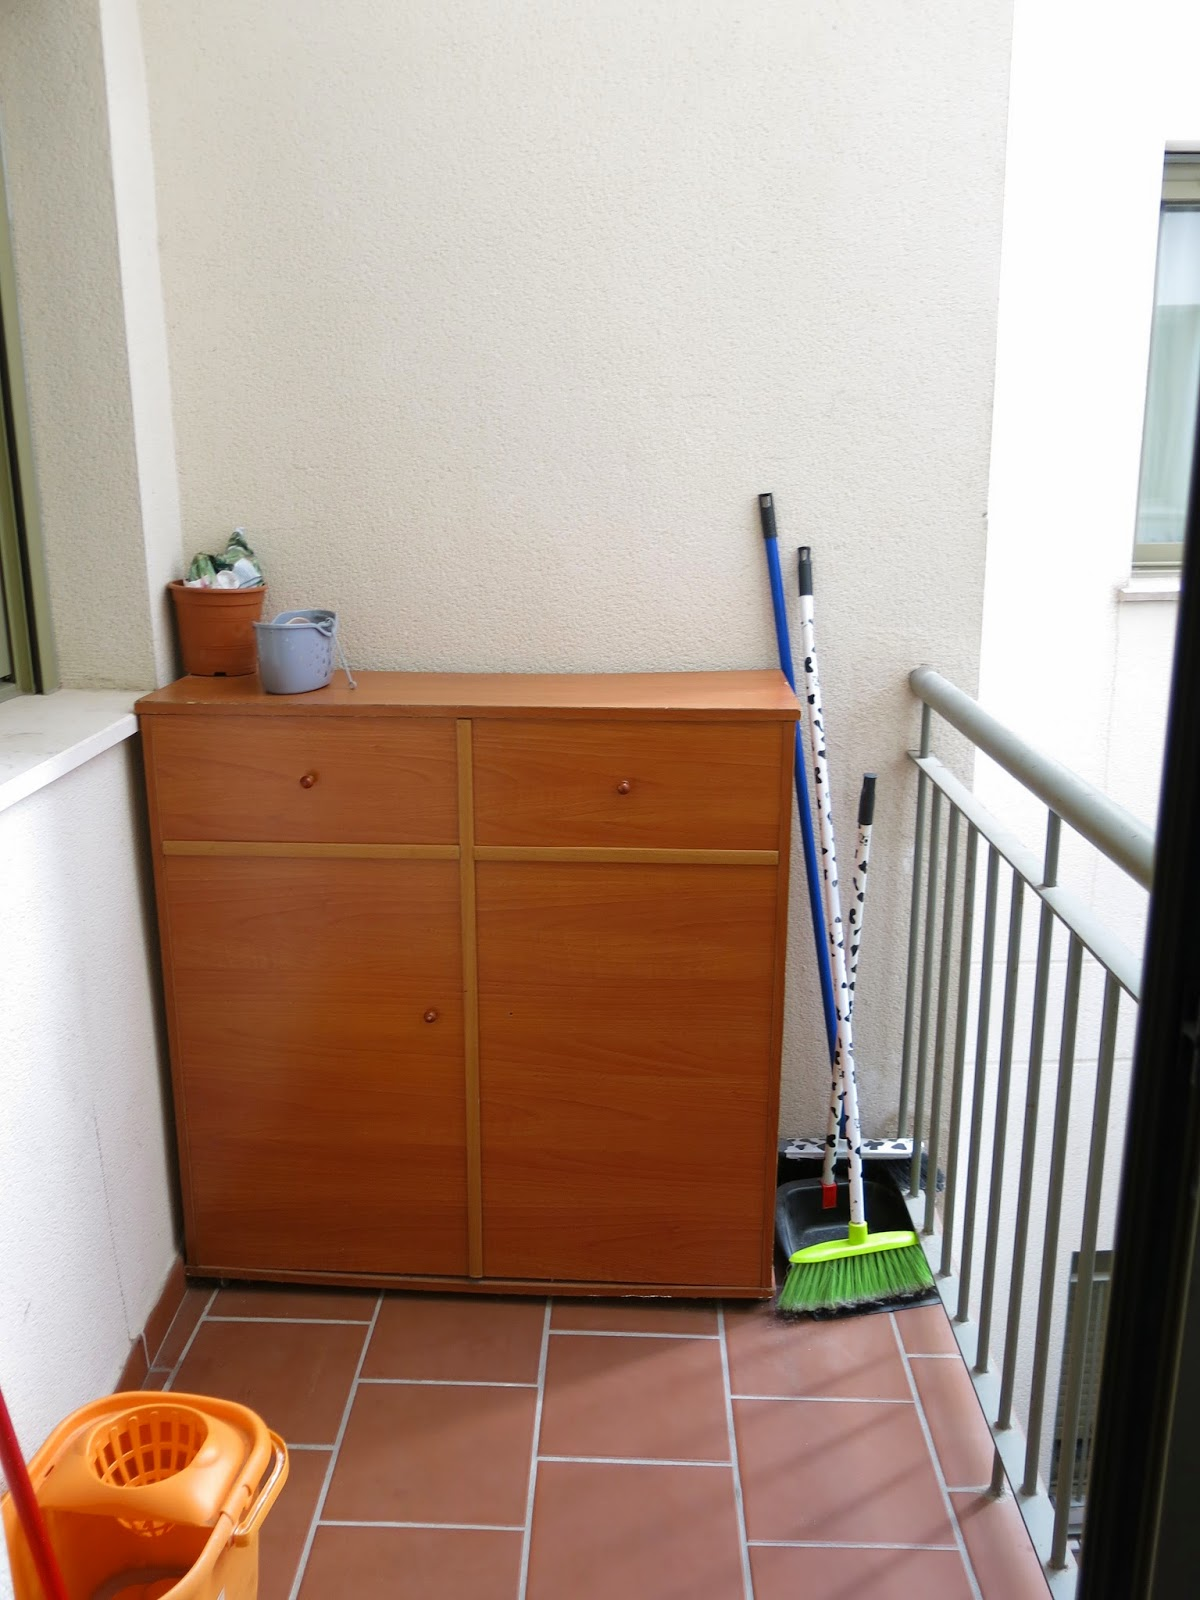 Photo of the balcony in our temporary apartment